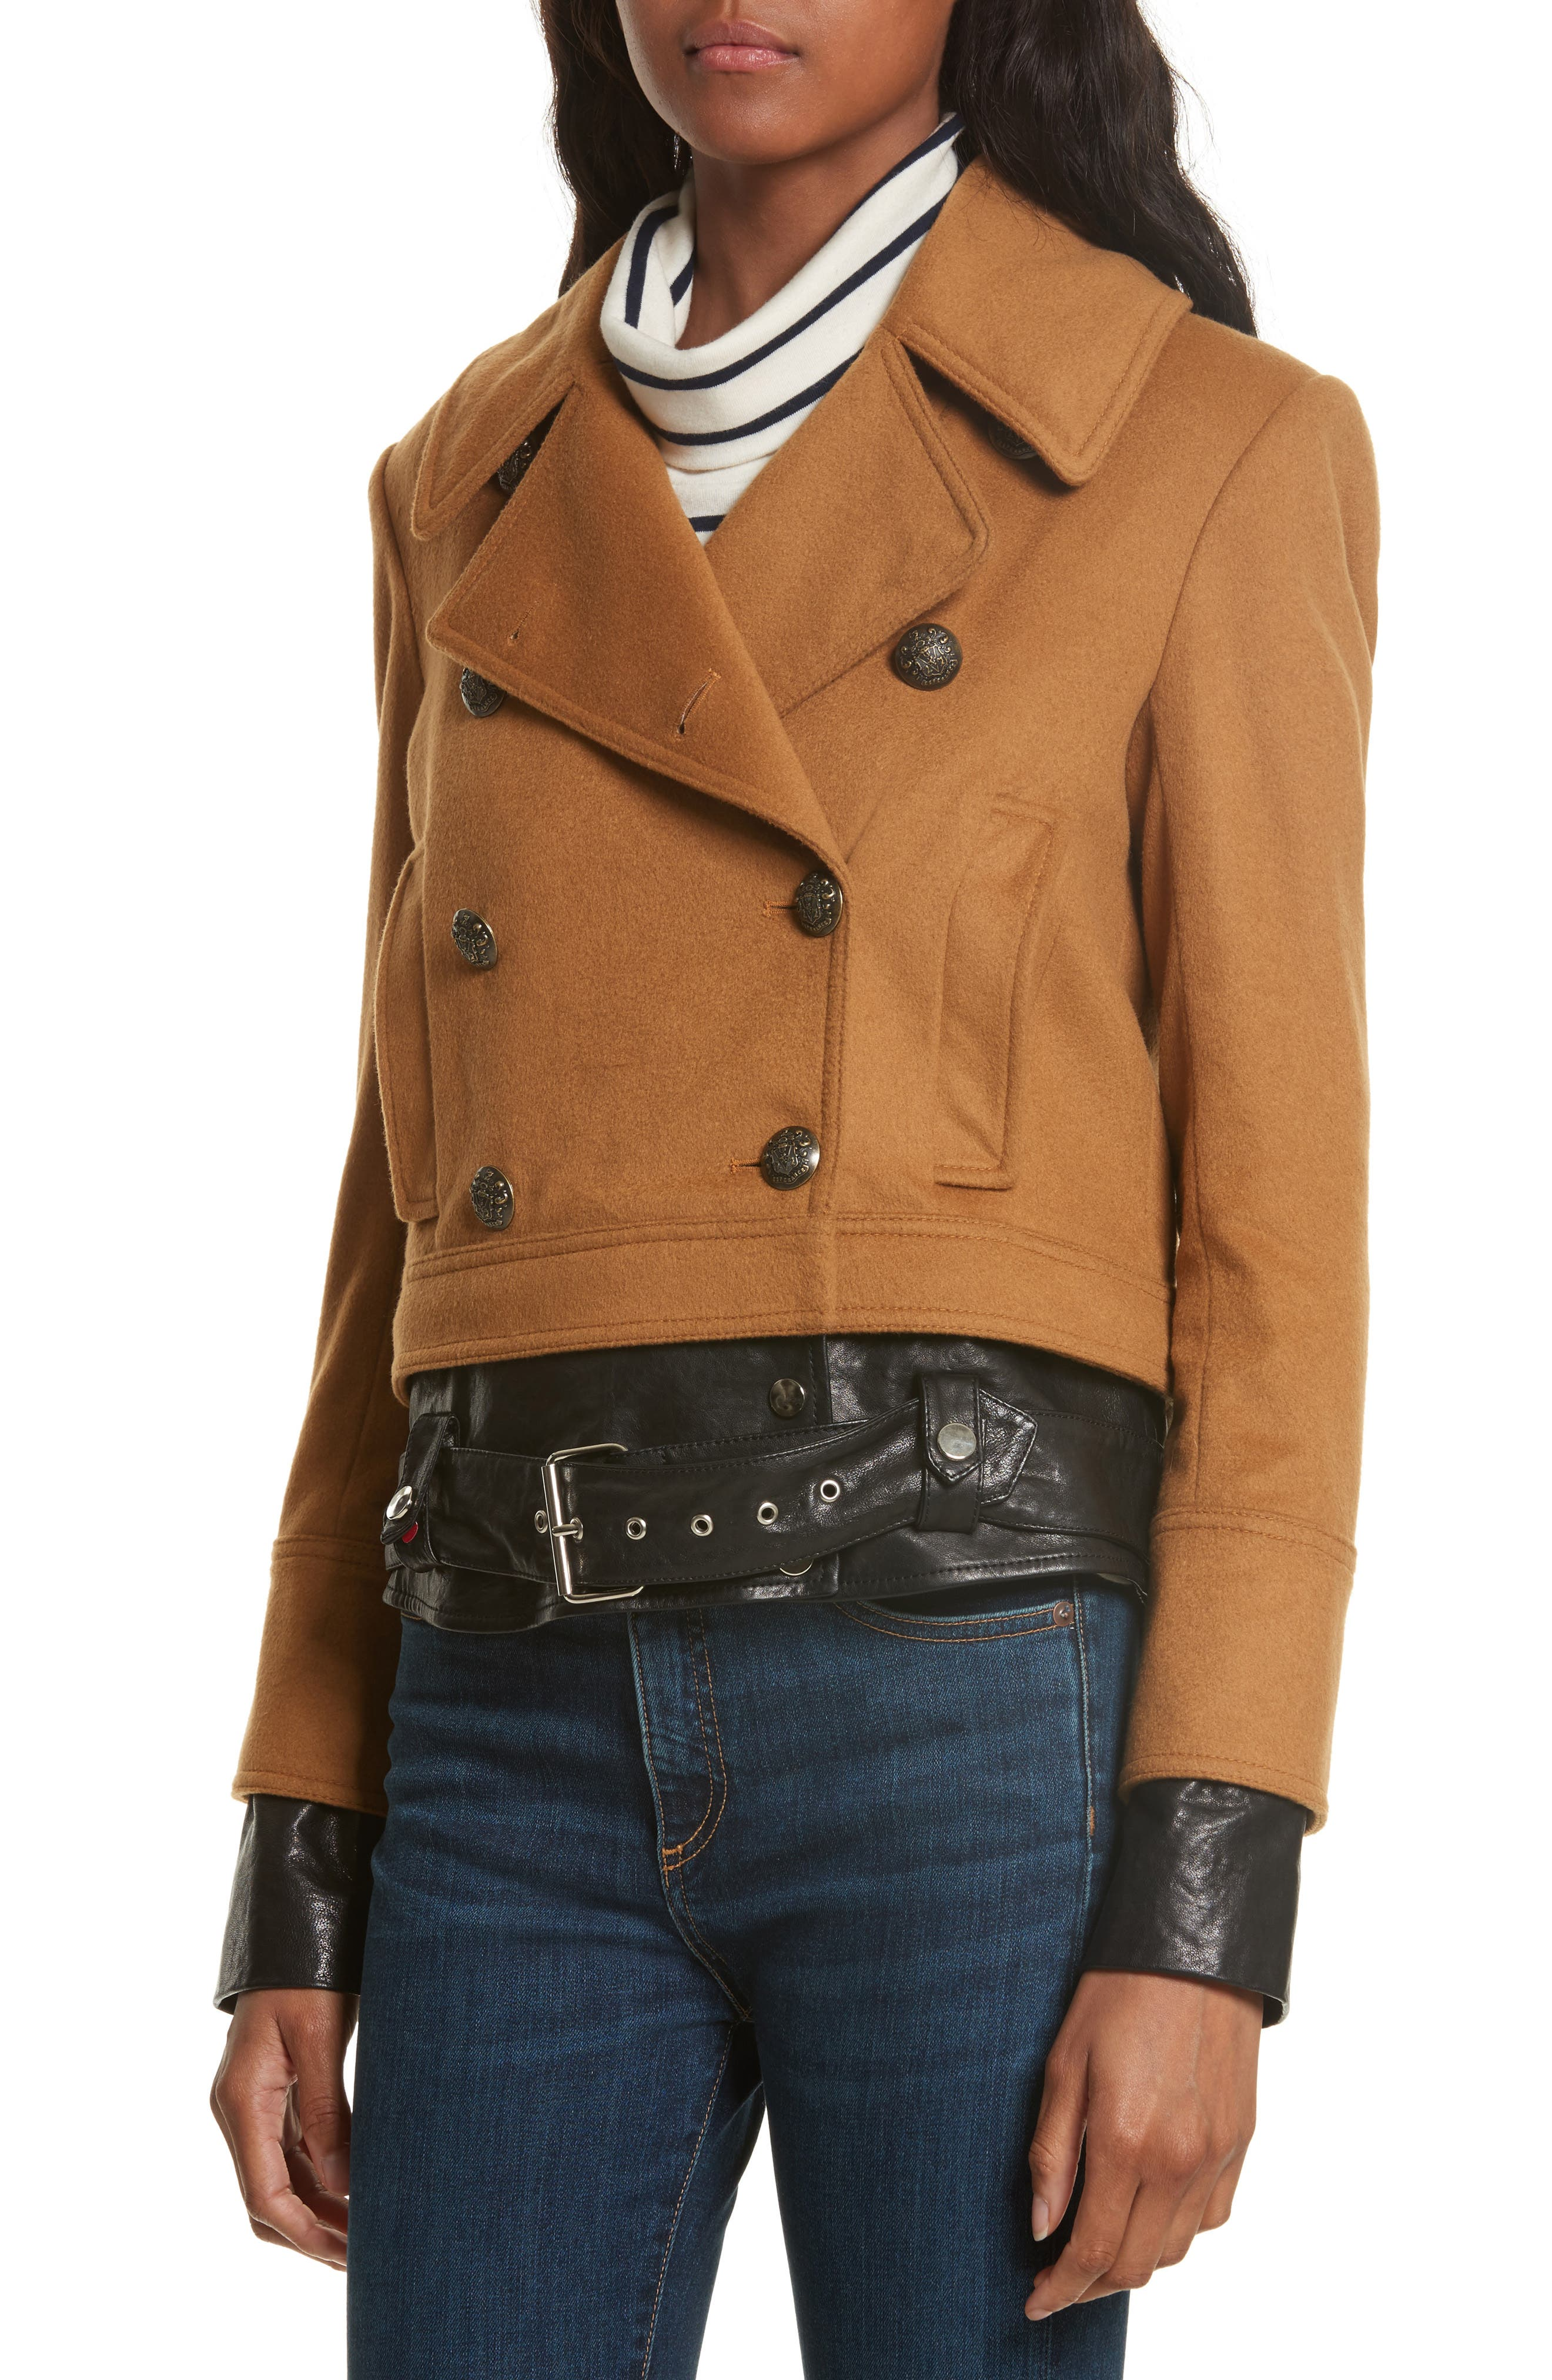 Yara Leather Hem Peacoat,                             Alternate thumbnail 5, color,                             Camel